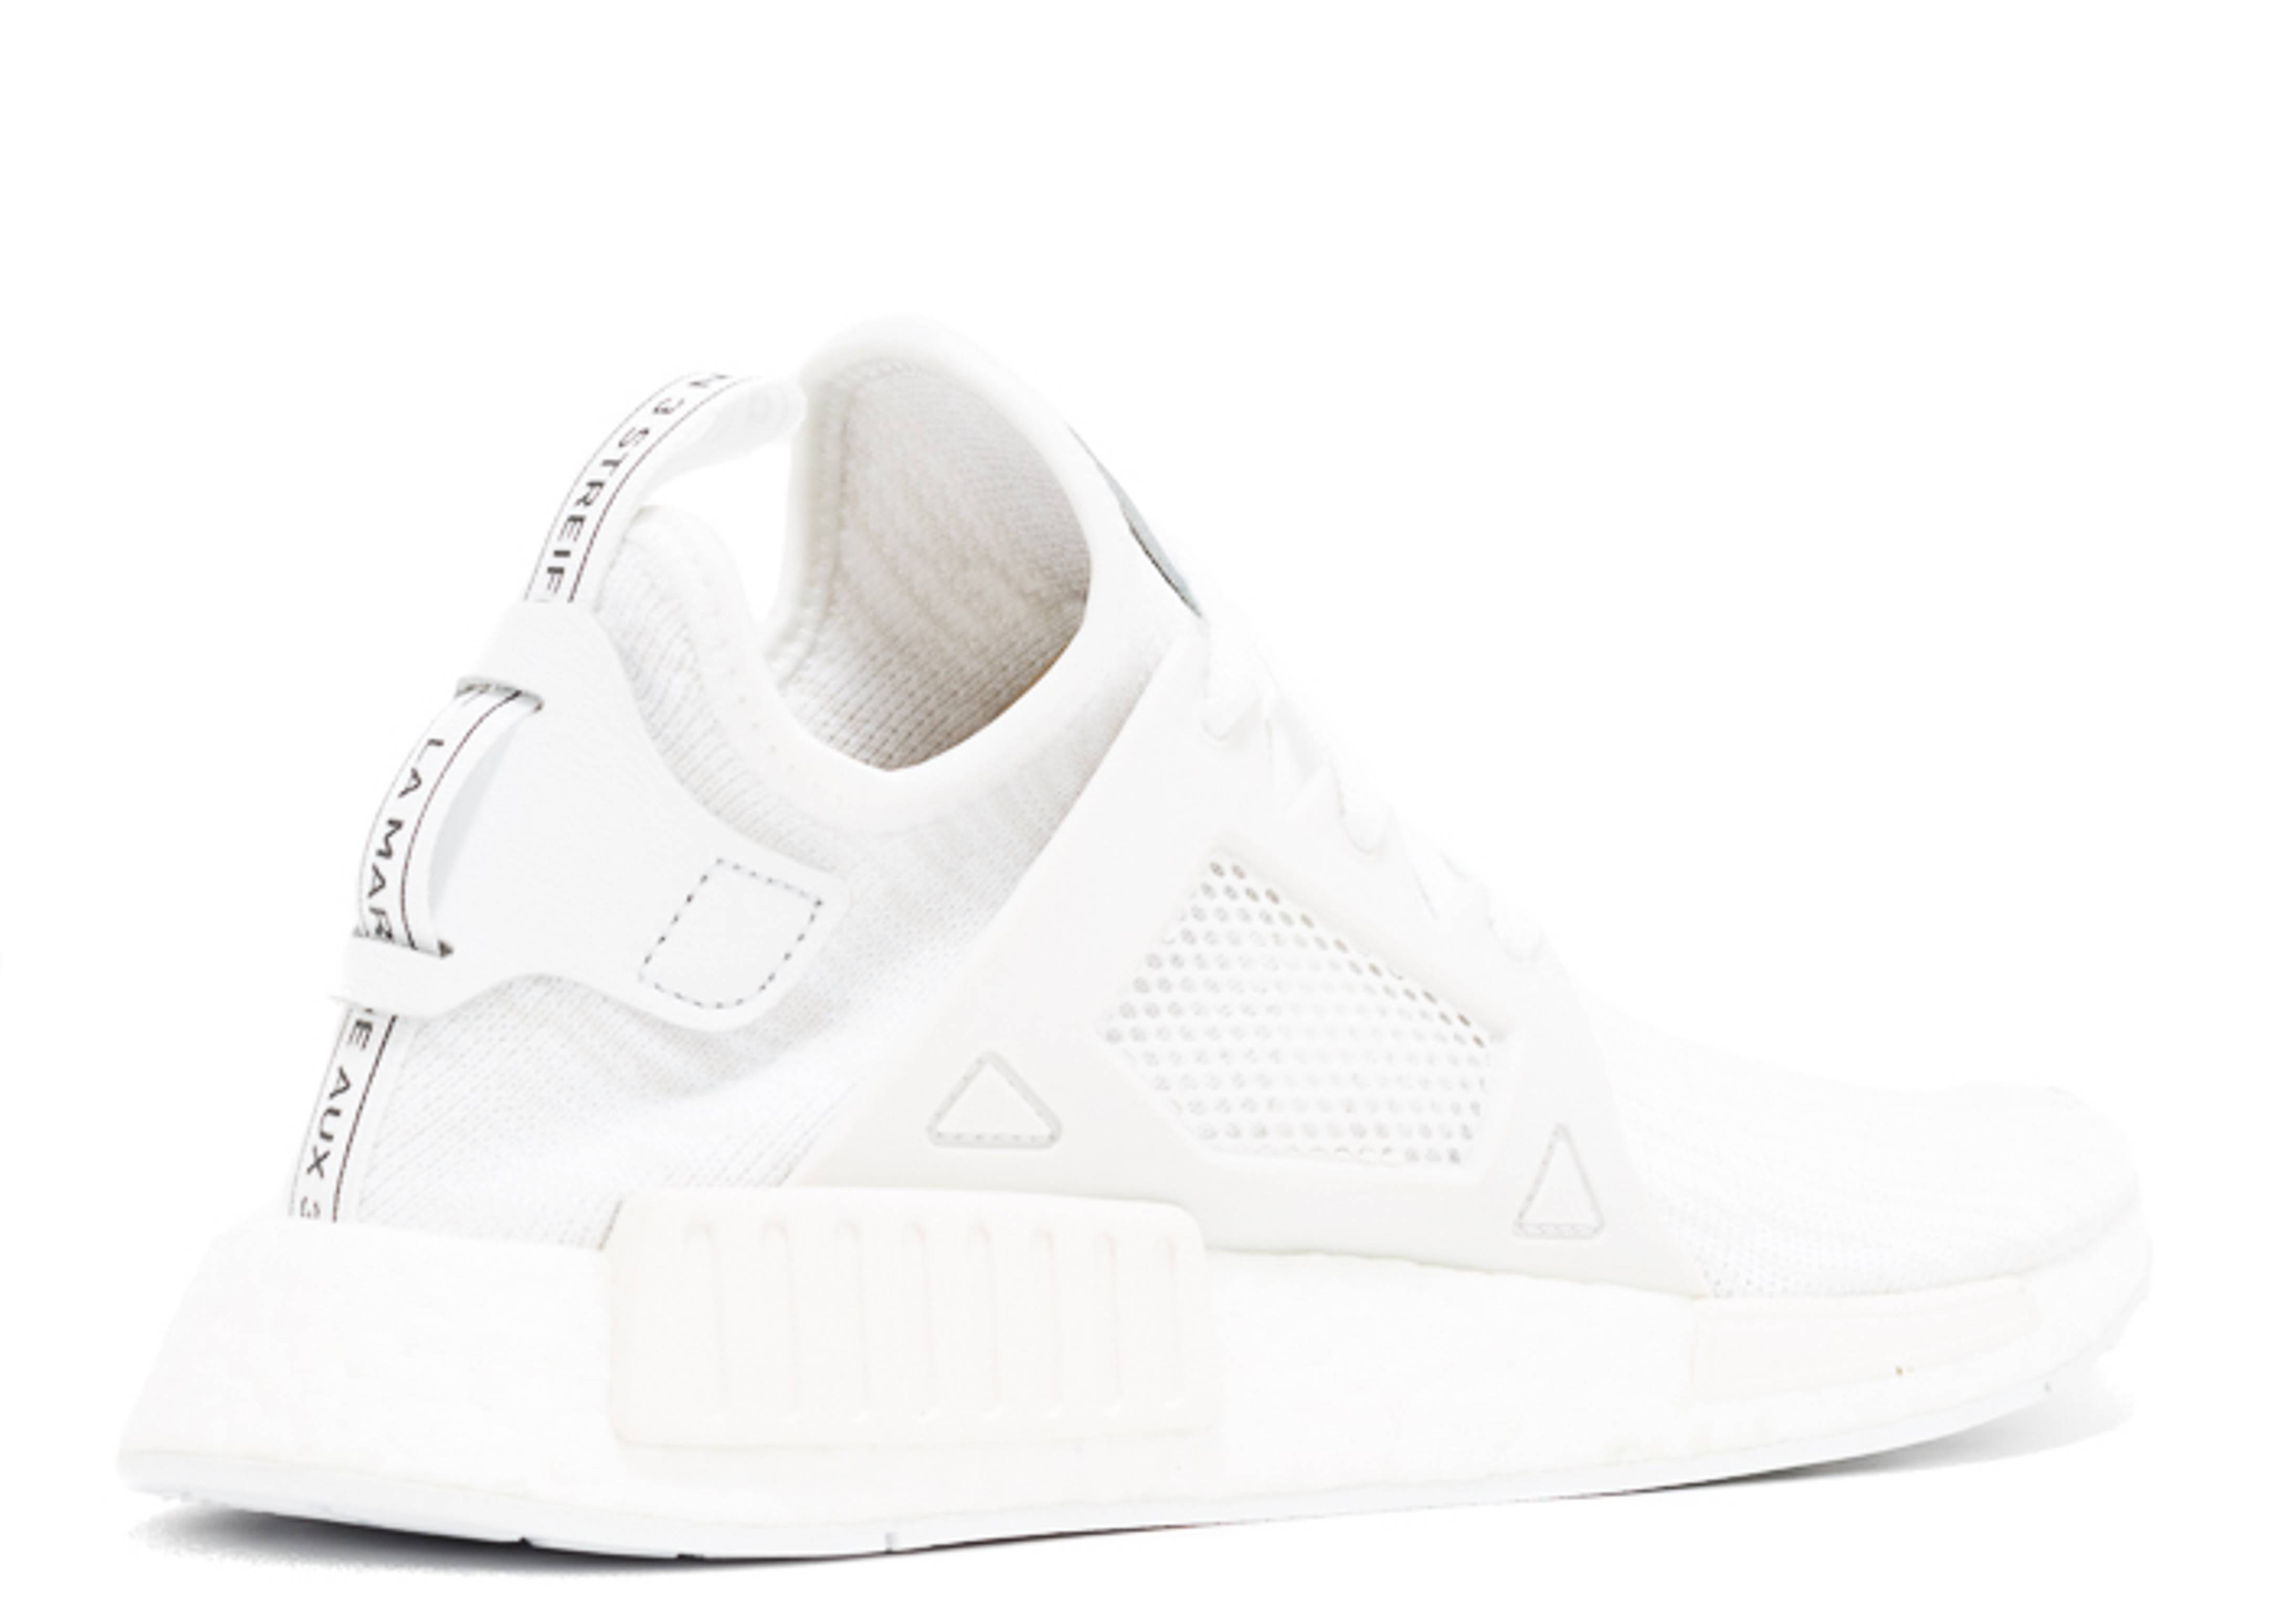 Nmd xr 1 gray Australia Free Local Classifieds